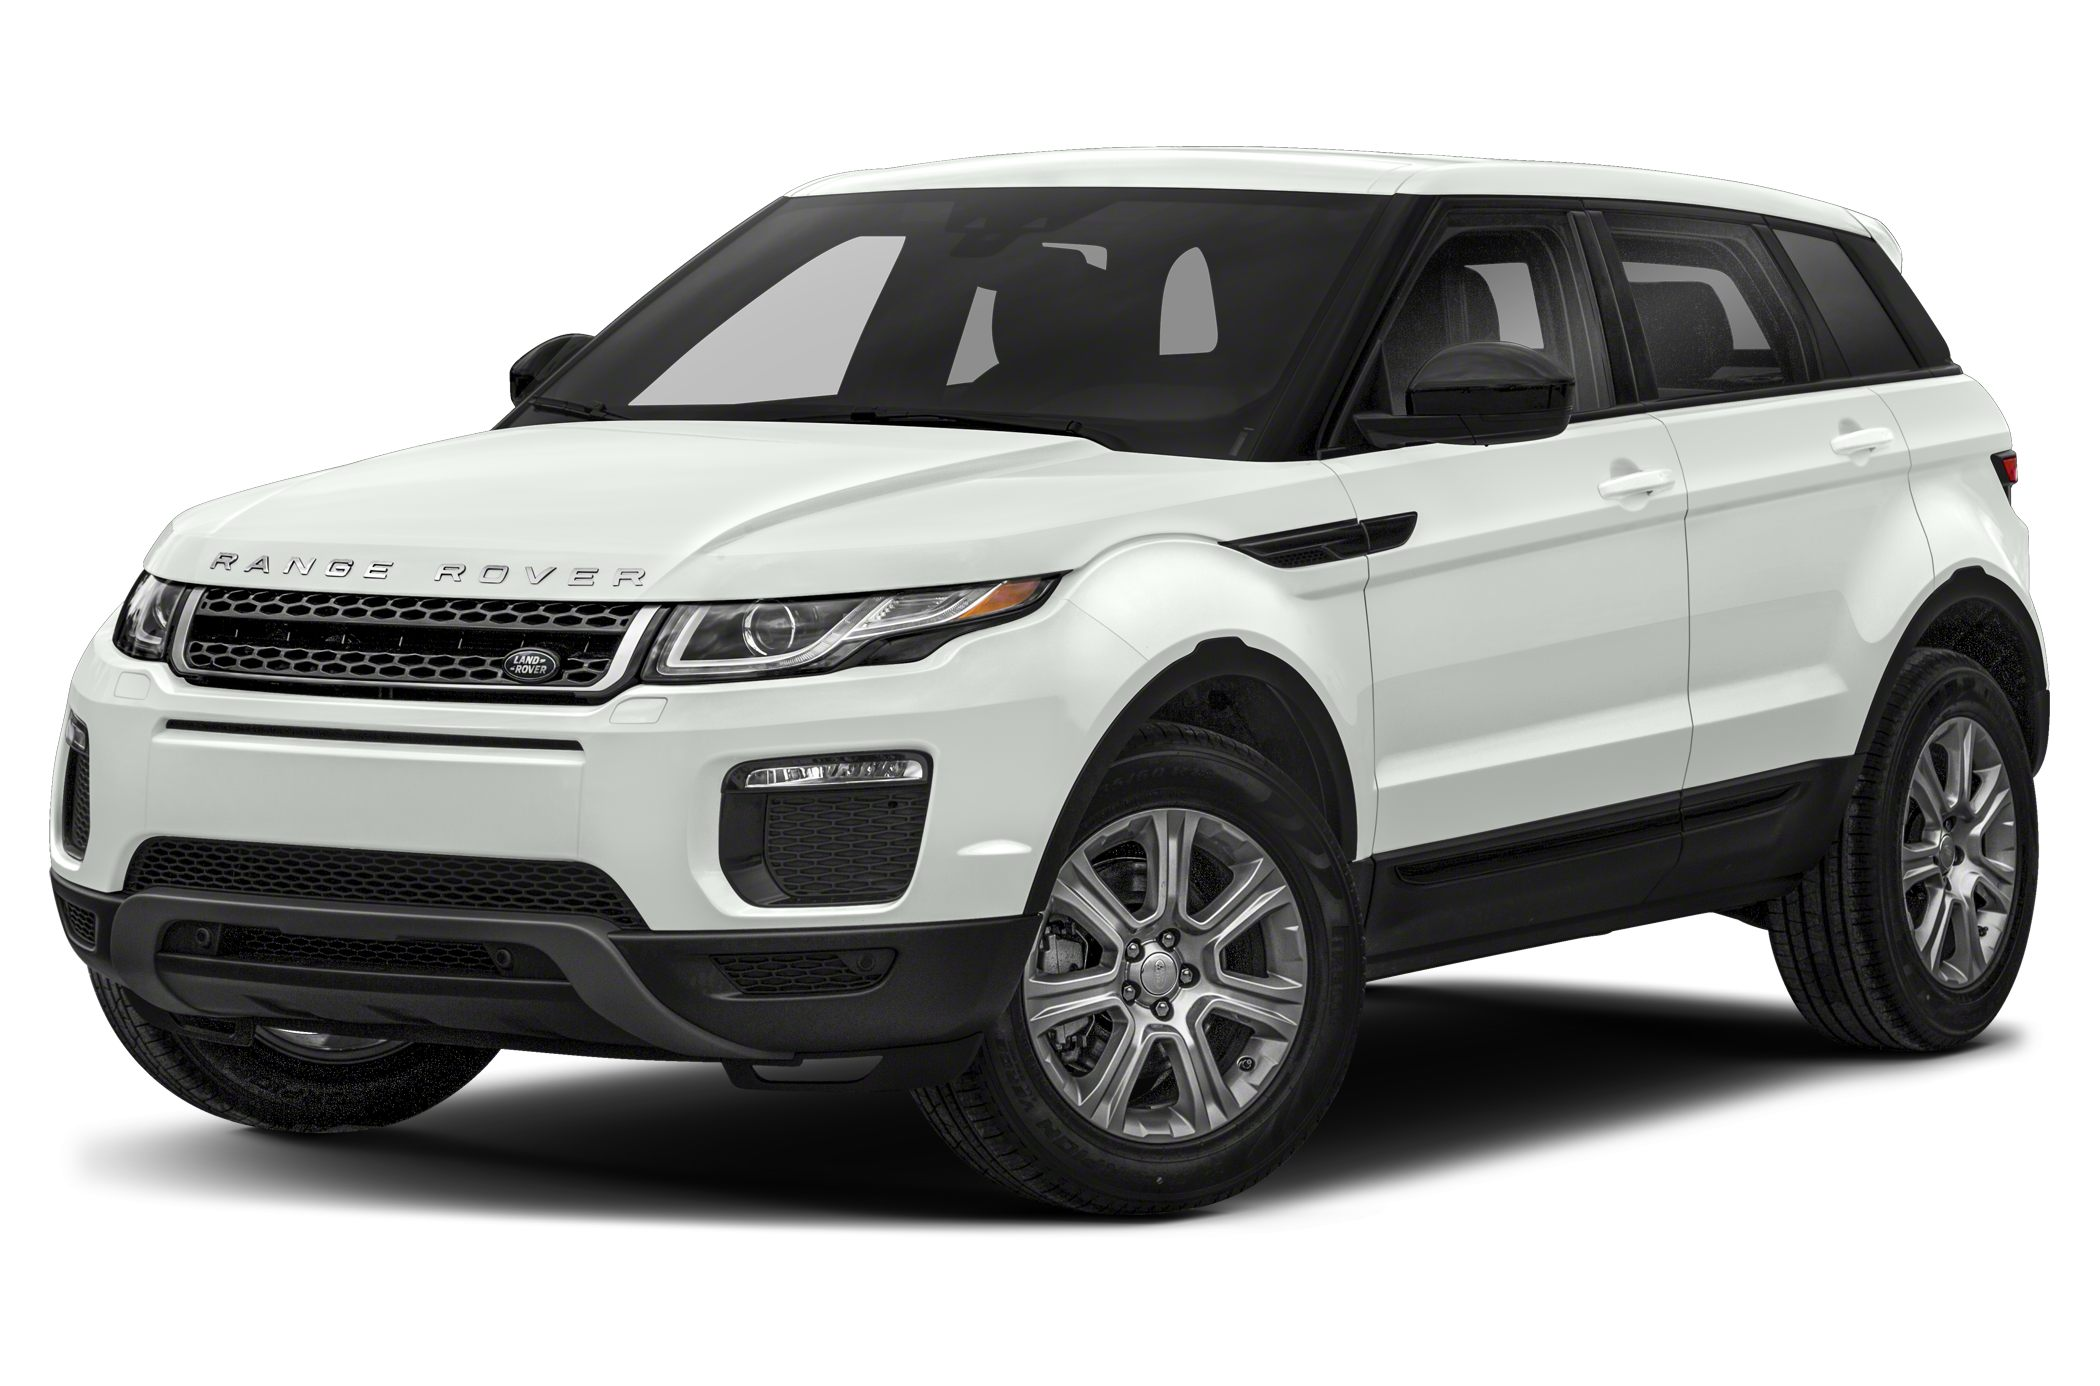 2012 range rover evoque photo gallery autoblog. Black Bedroom Furniture Sets. Home Design Ideas